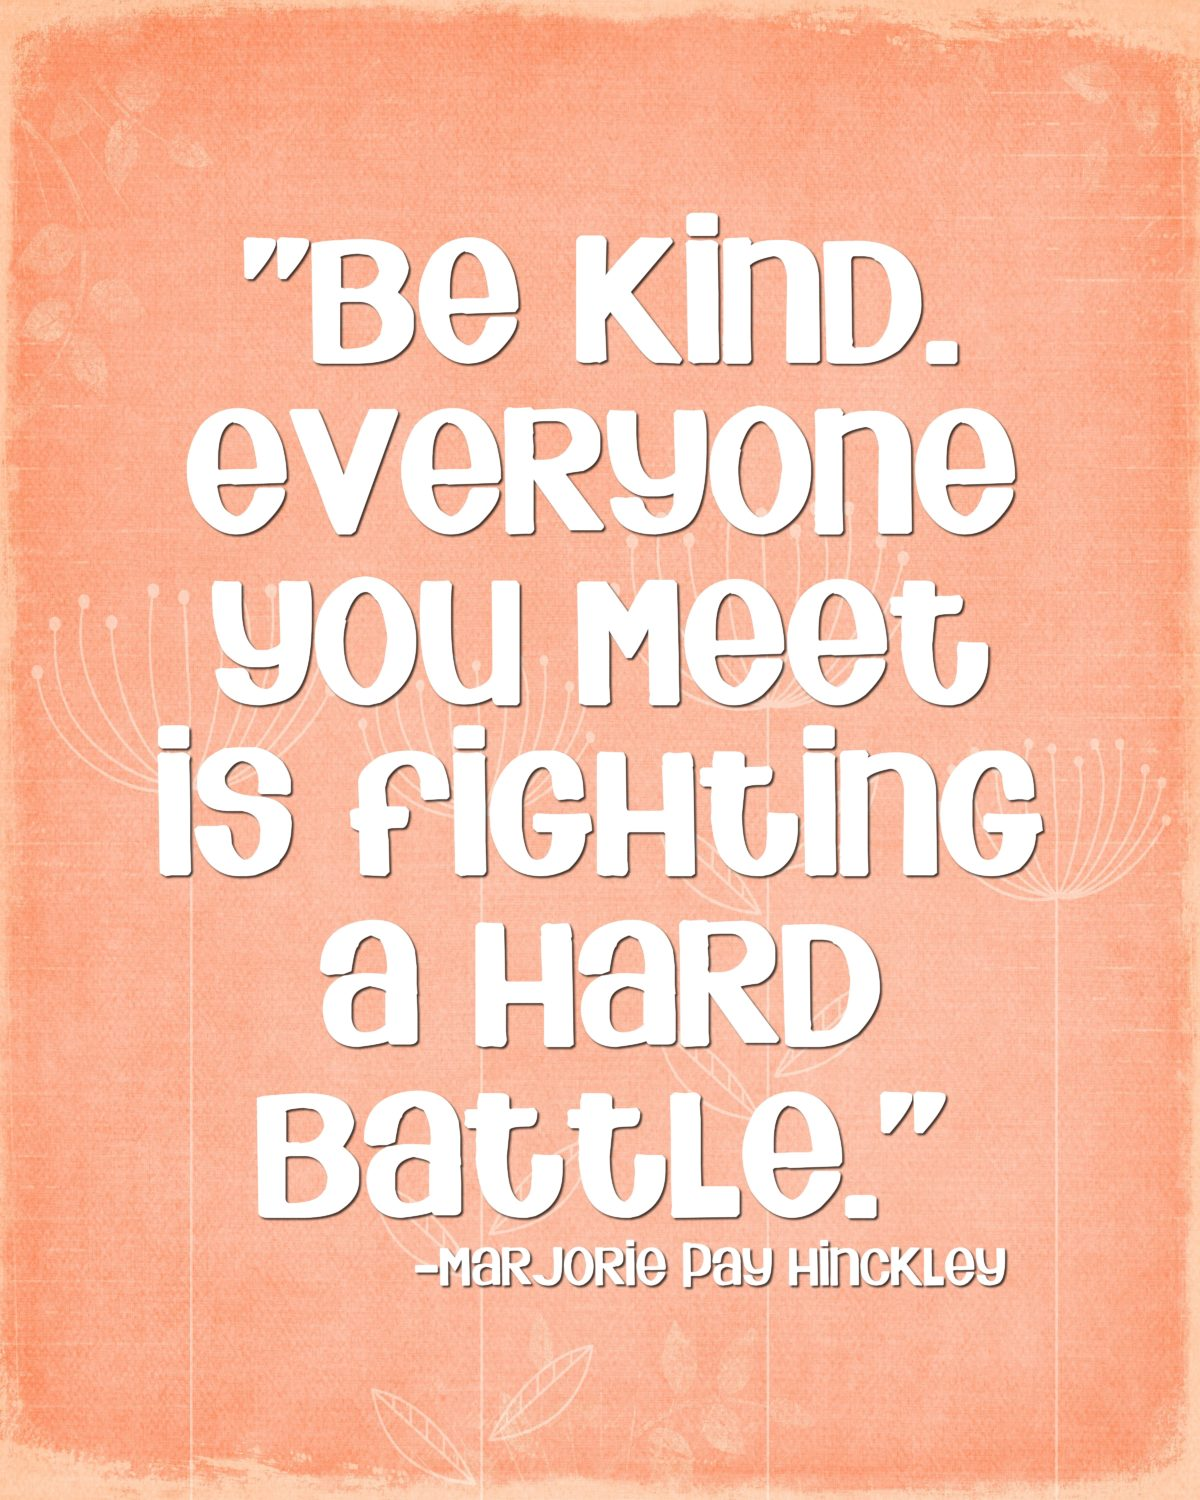 Be kind. Everyone you meet is fighting a hard battle …Marjorie Pay Hinckley Quote